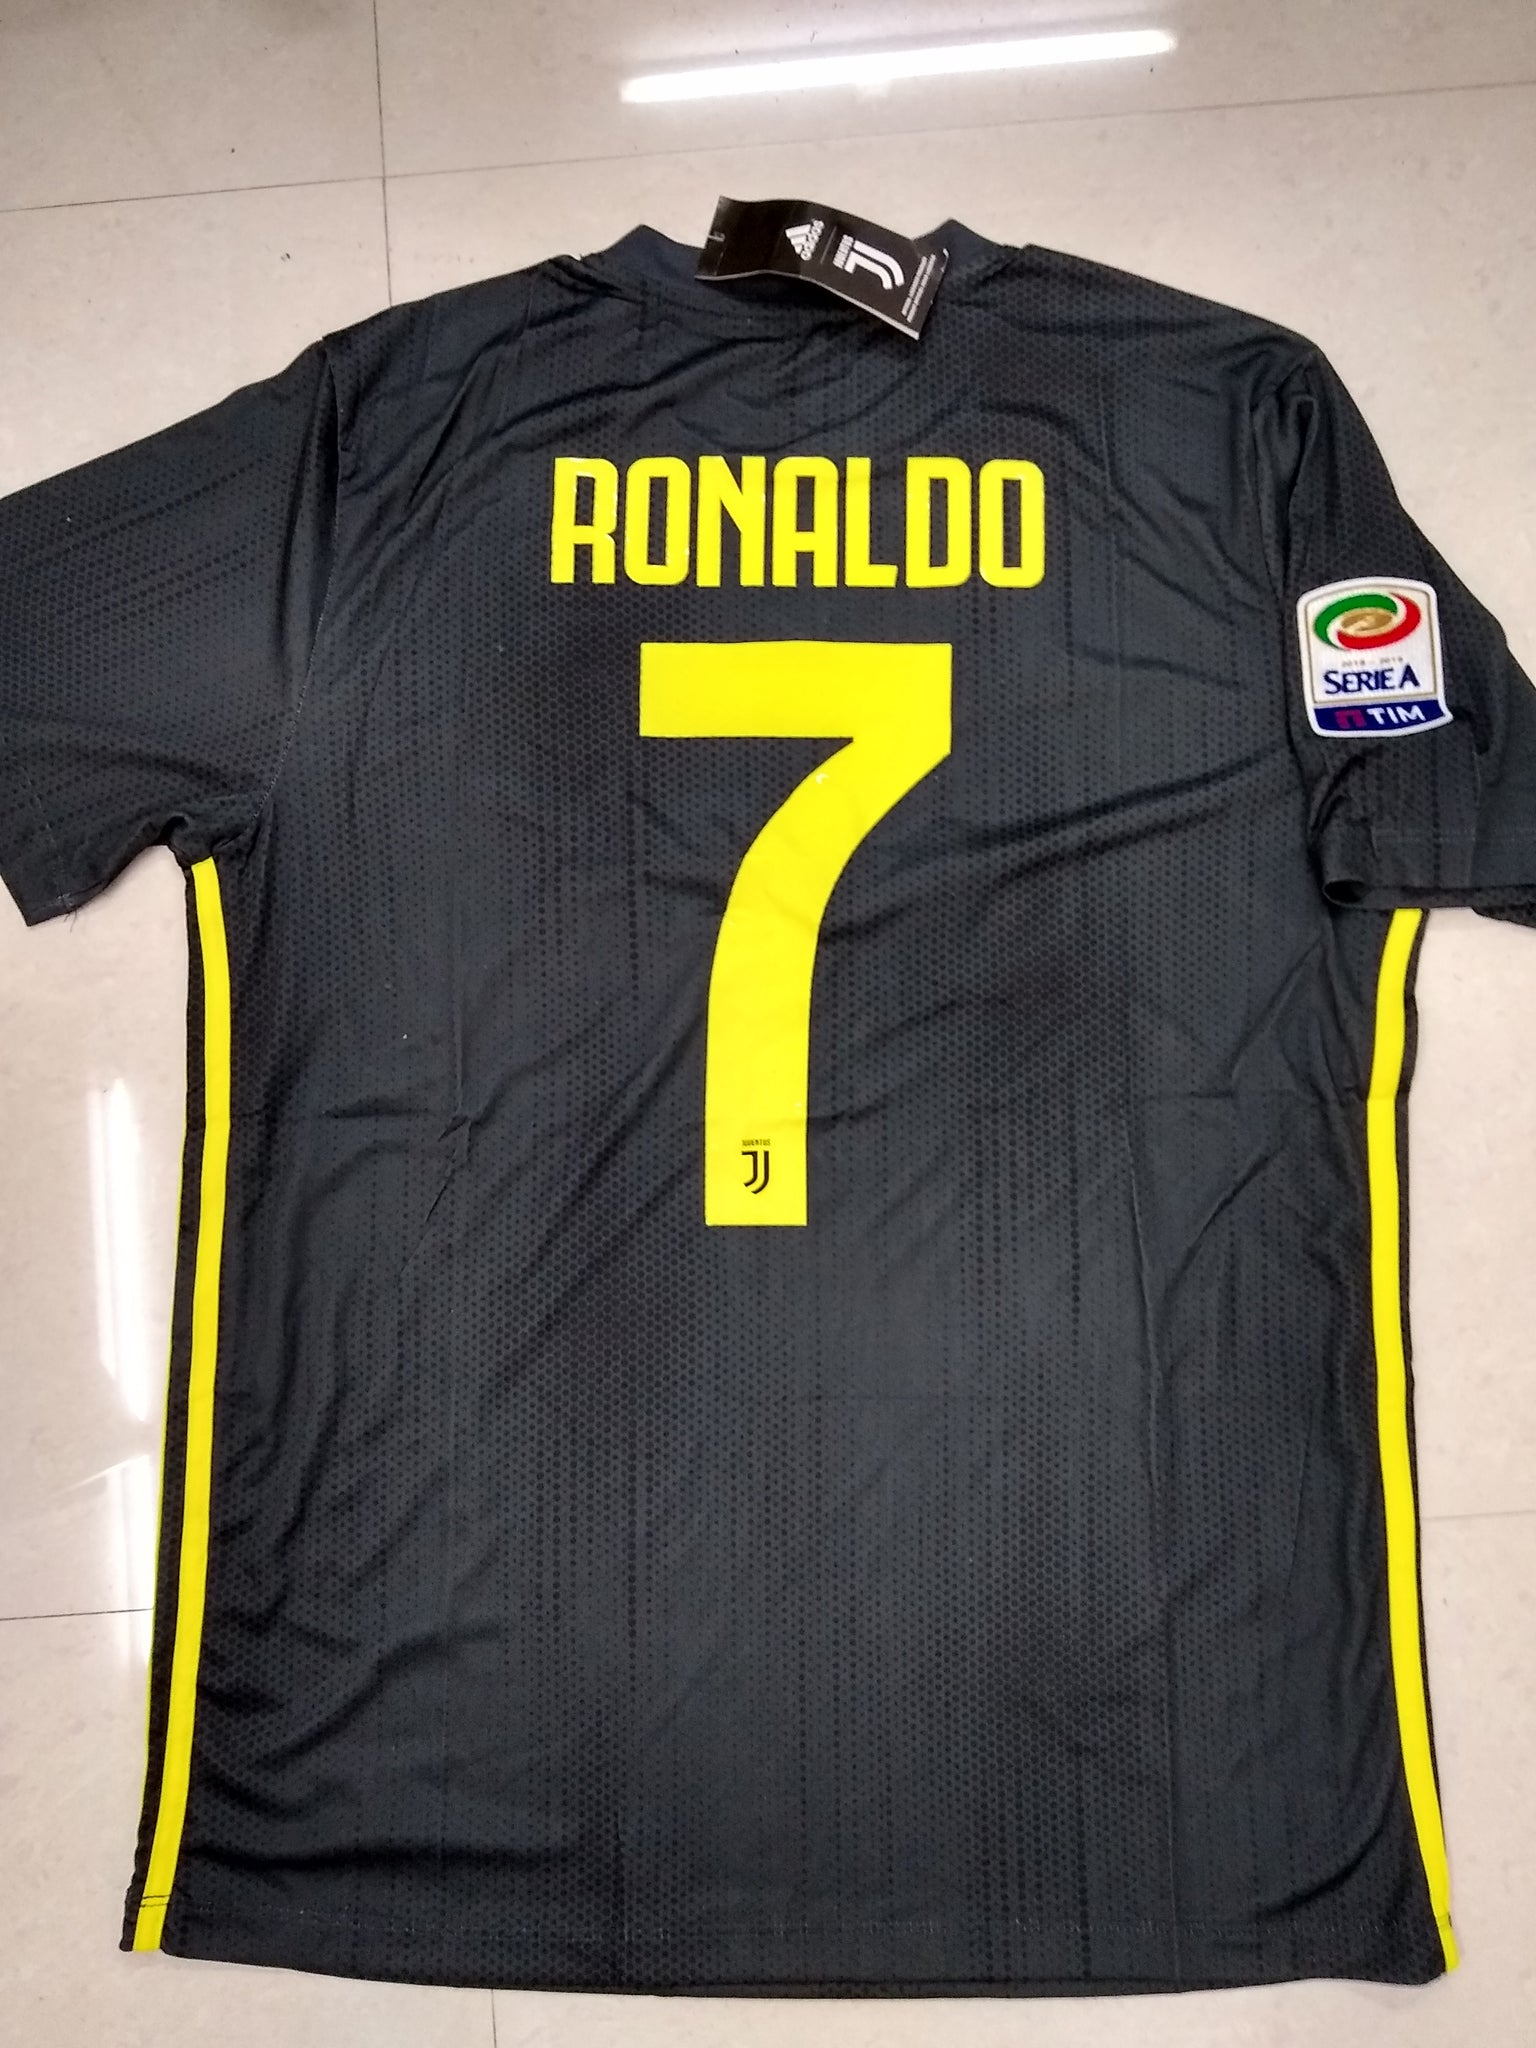 on sale 4adc9 069b3 Juventus Ronaldo Home Football Jersey Season 2018-19 online ...